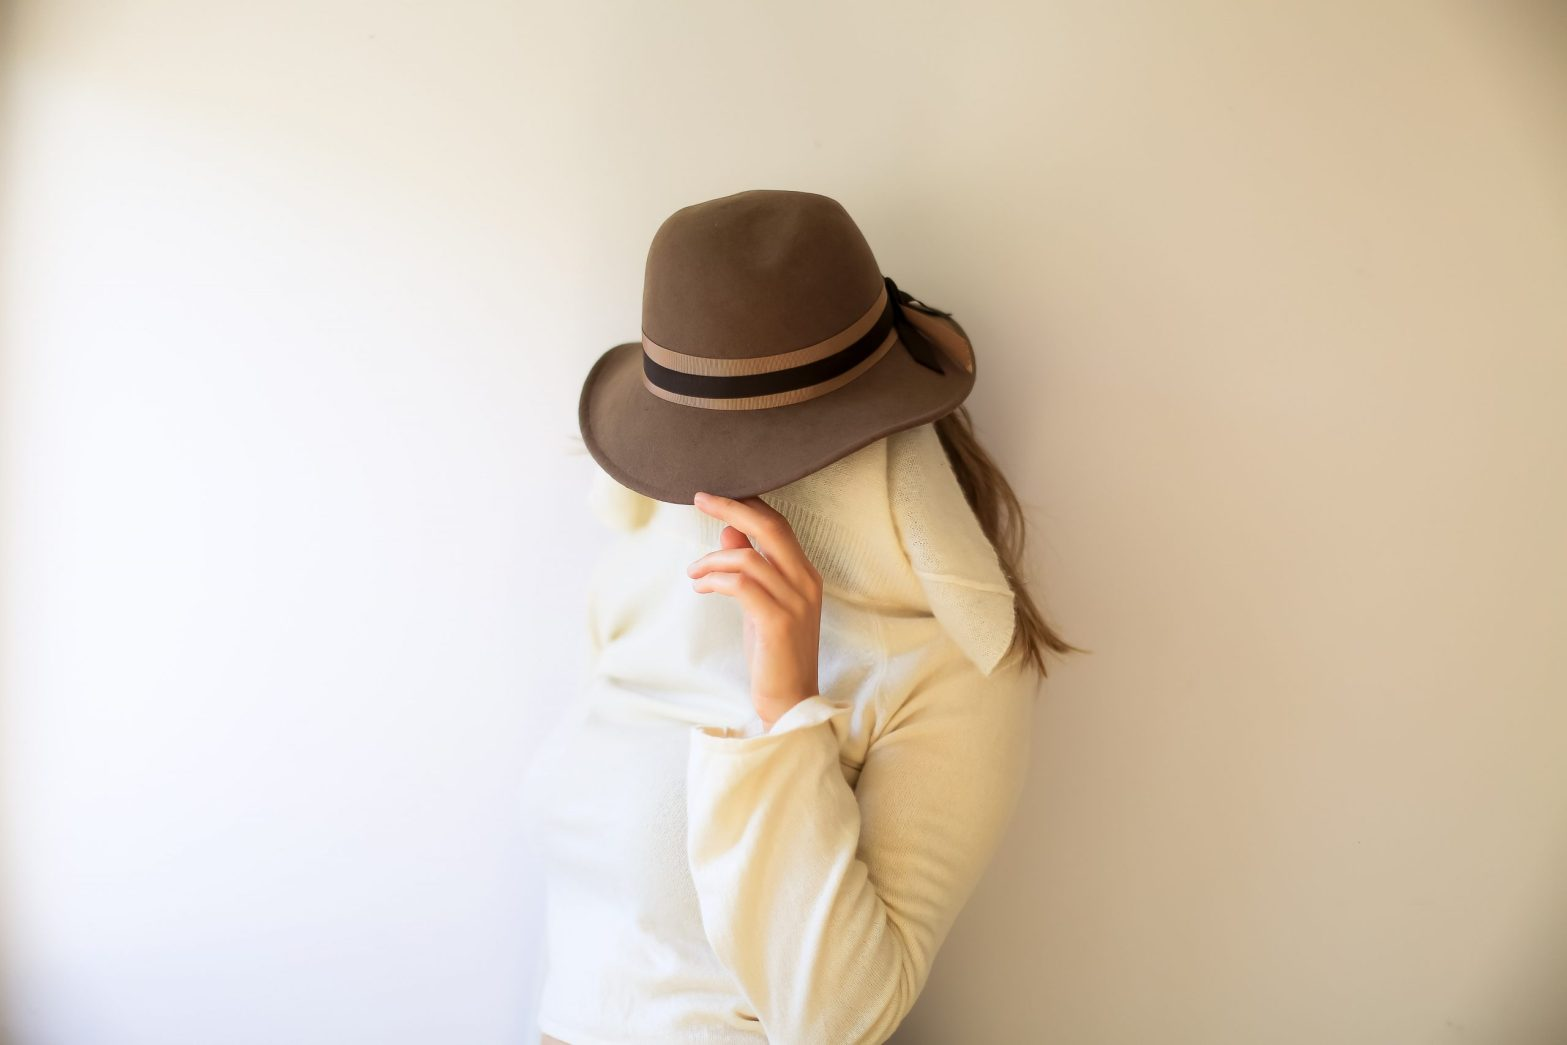 Woman with a hat on and something covering her face: vulnerability avoidance tactics